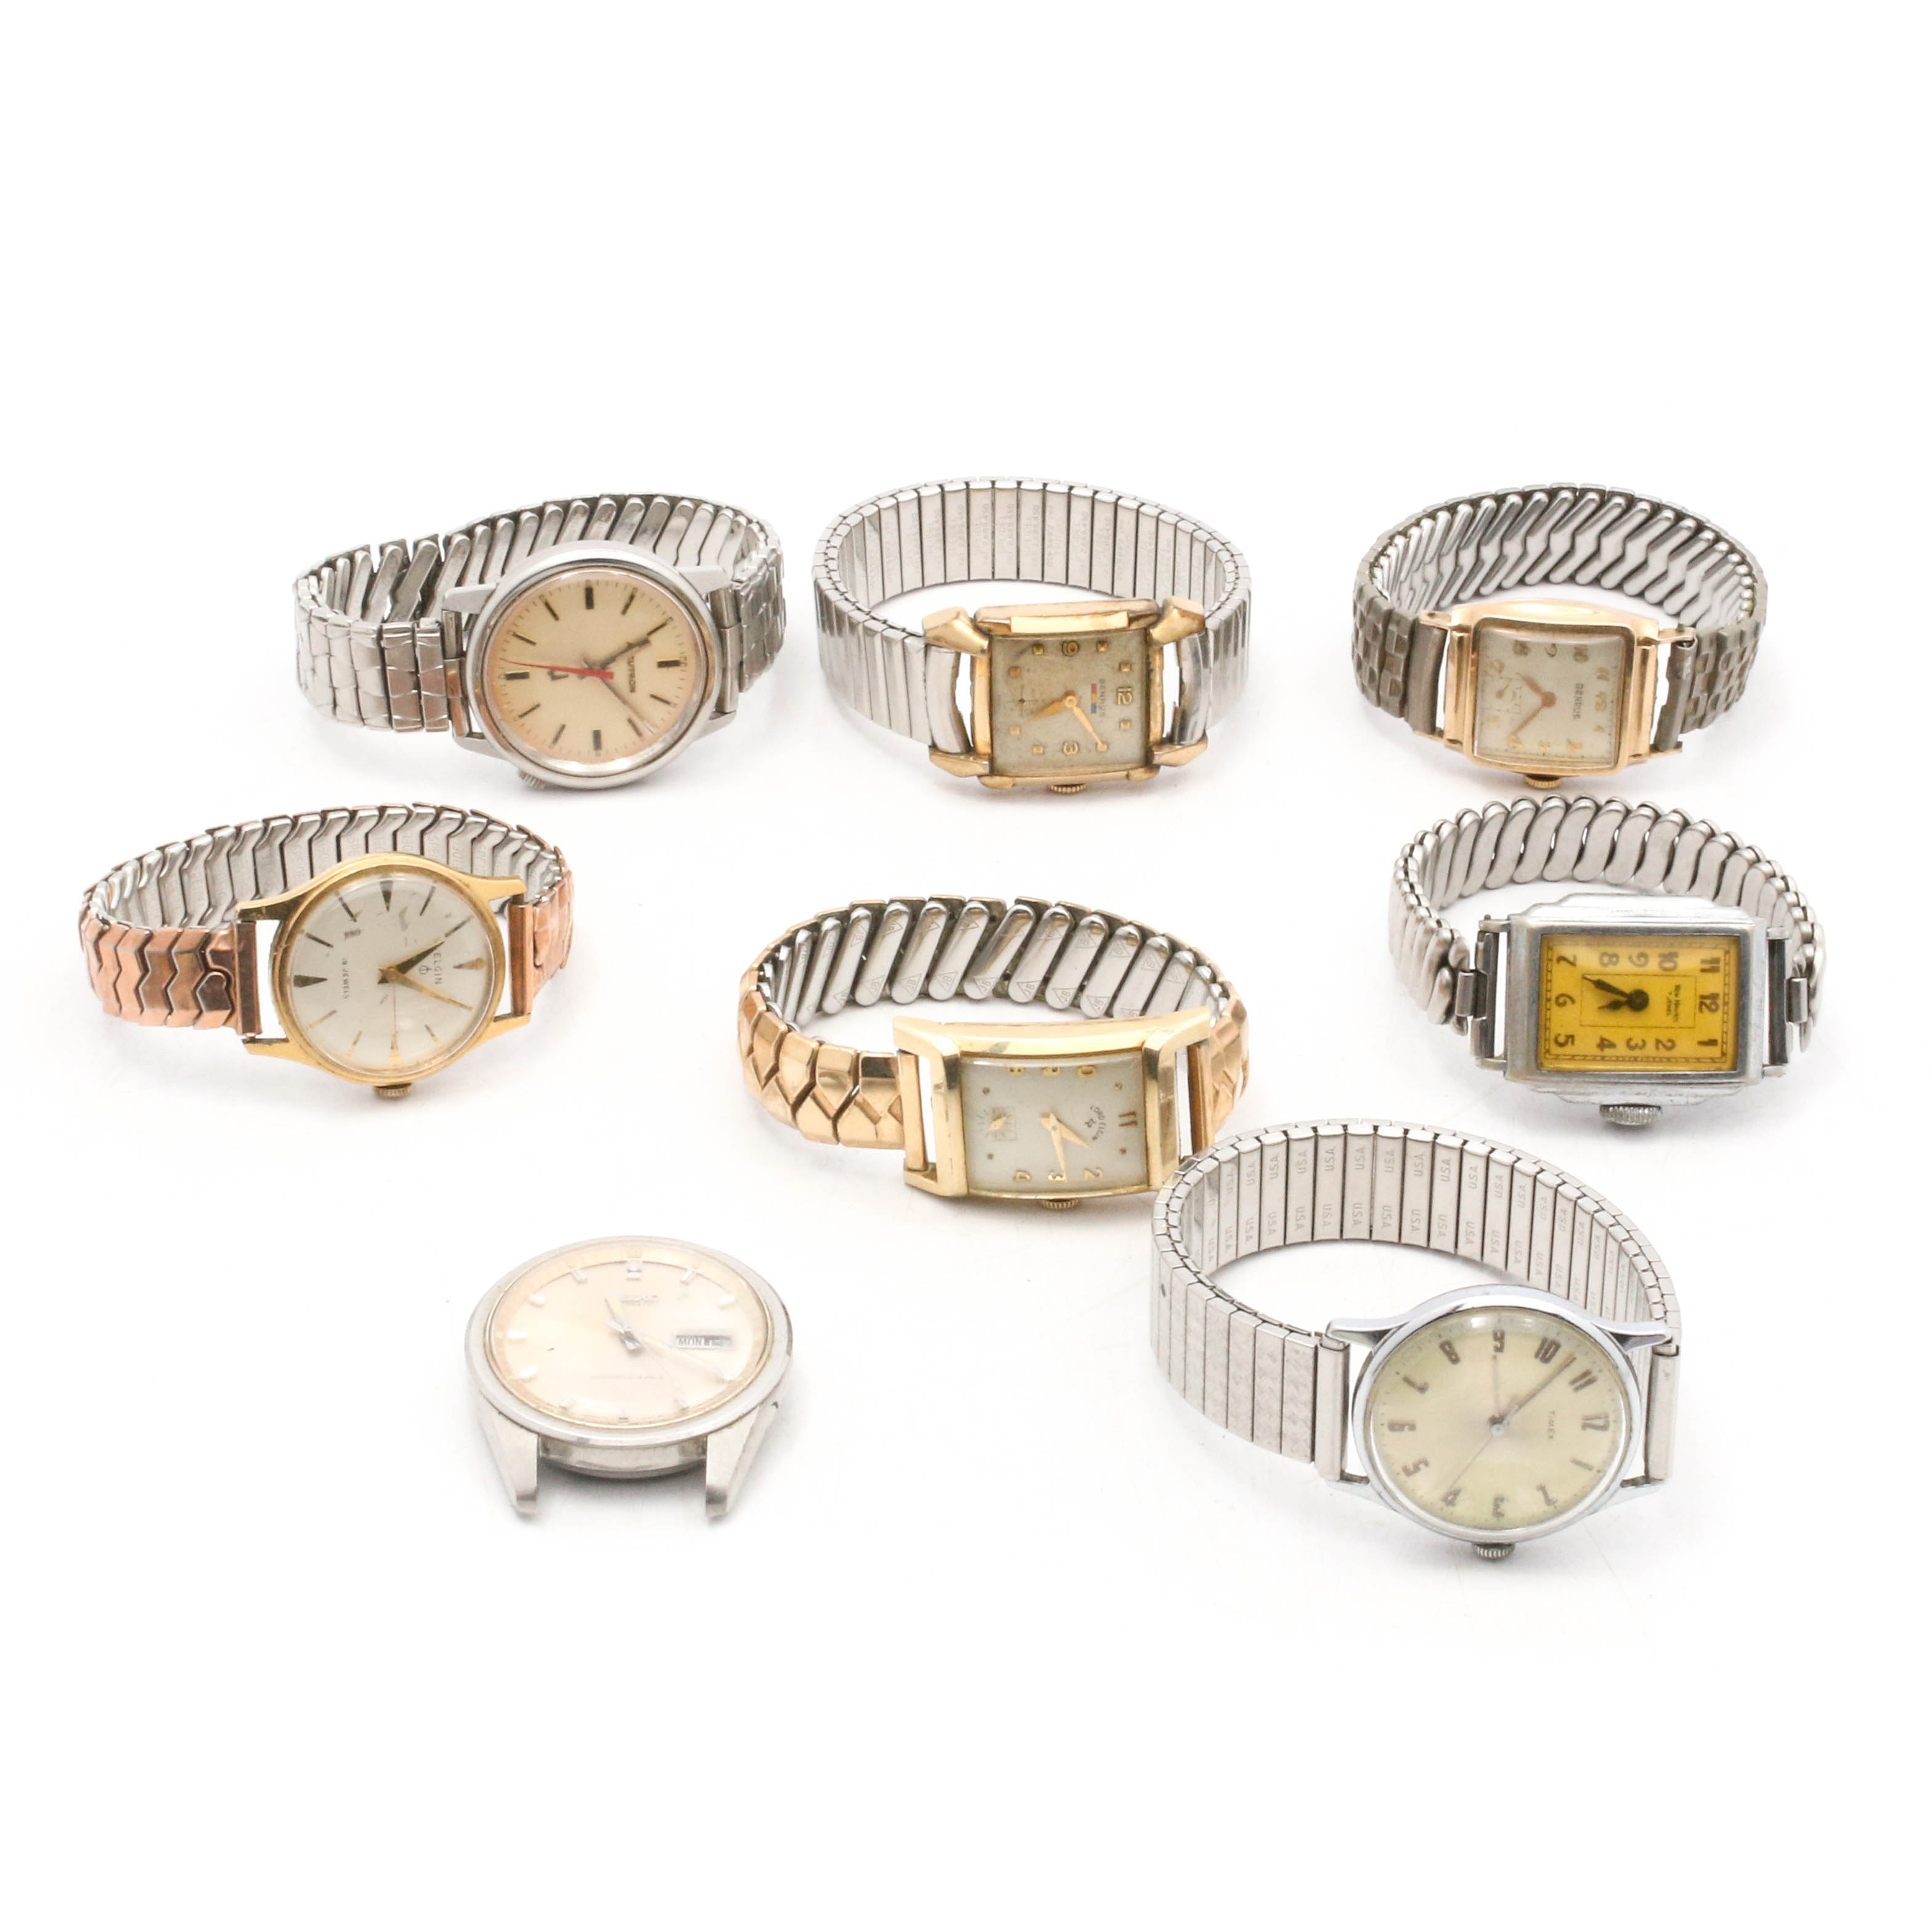 Vintage Wristwatches Featuring Elgin